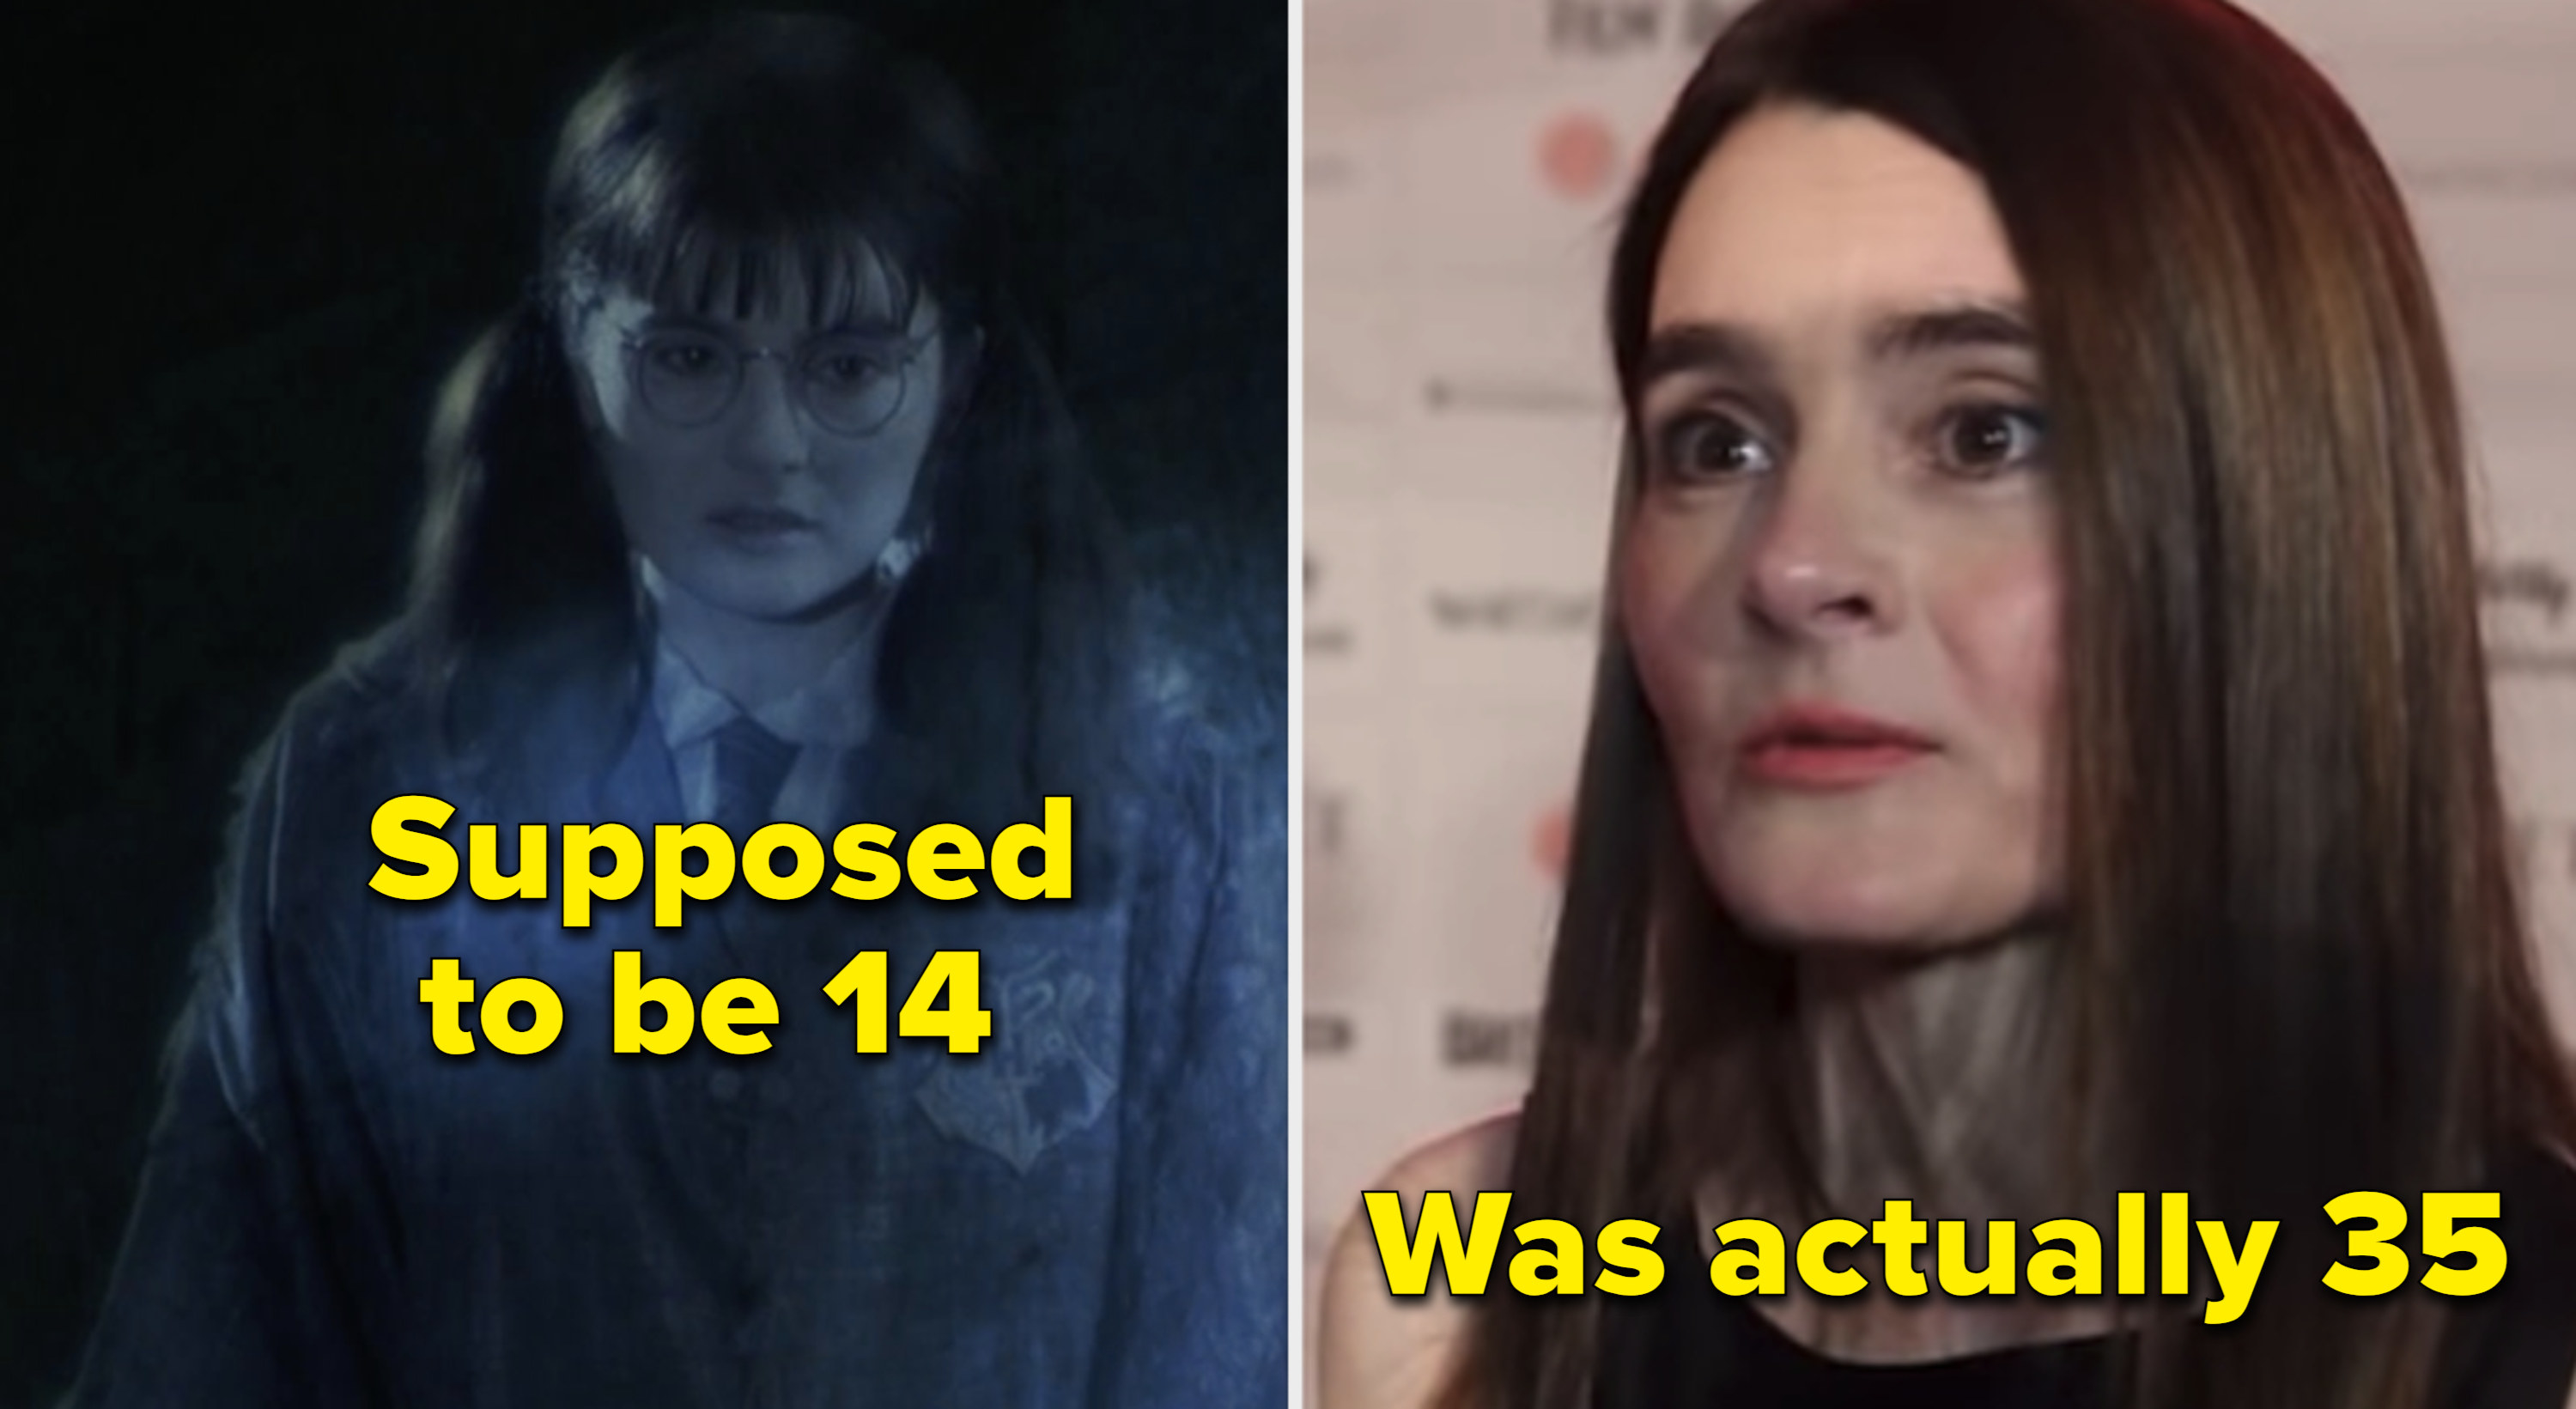 Moaning Myrtle in the movies vs. Shirley Henderson in real life